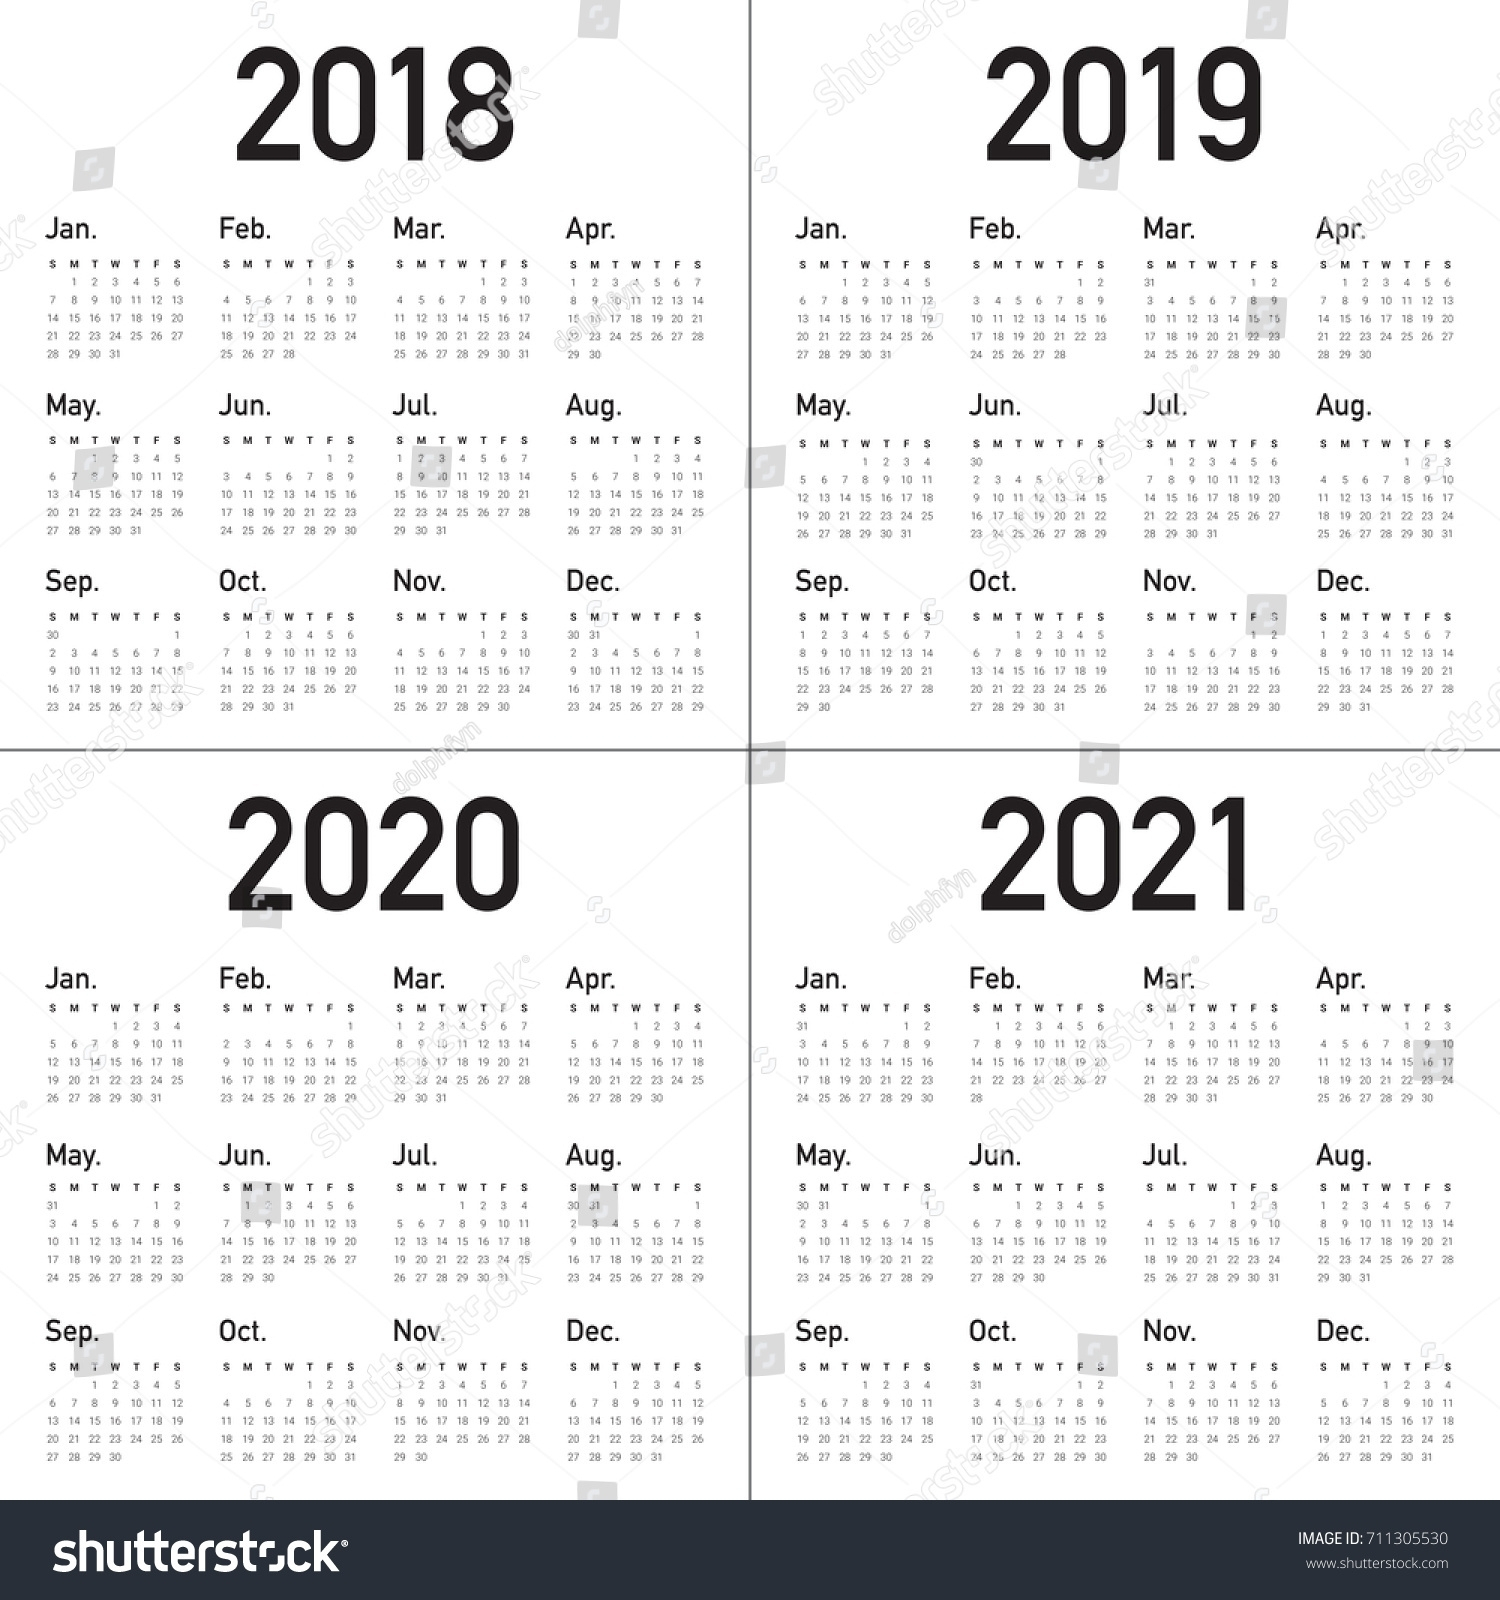 Fine 3 Year Calendar 2019 To 2021 : Mini Calendar Template regarding 3 Year Calendar Printable